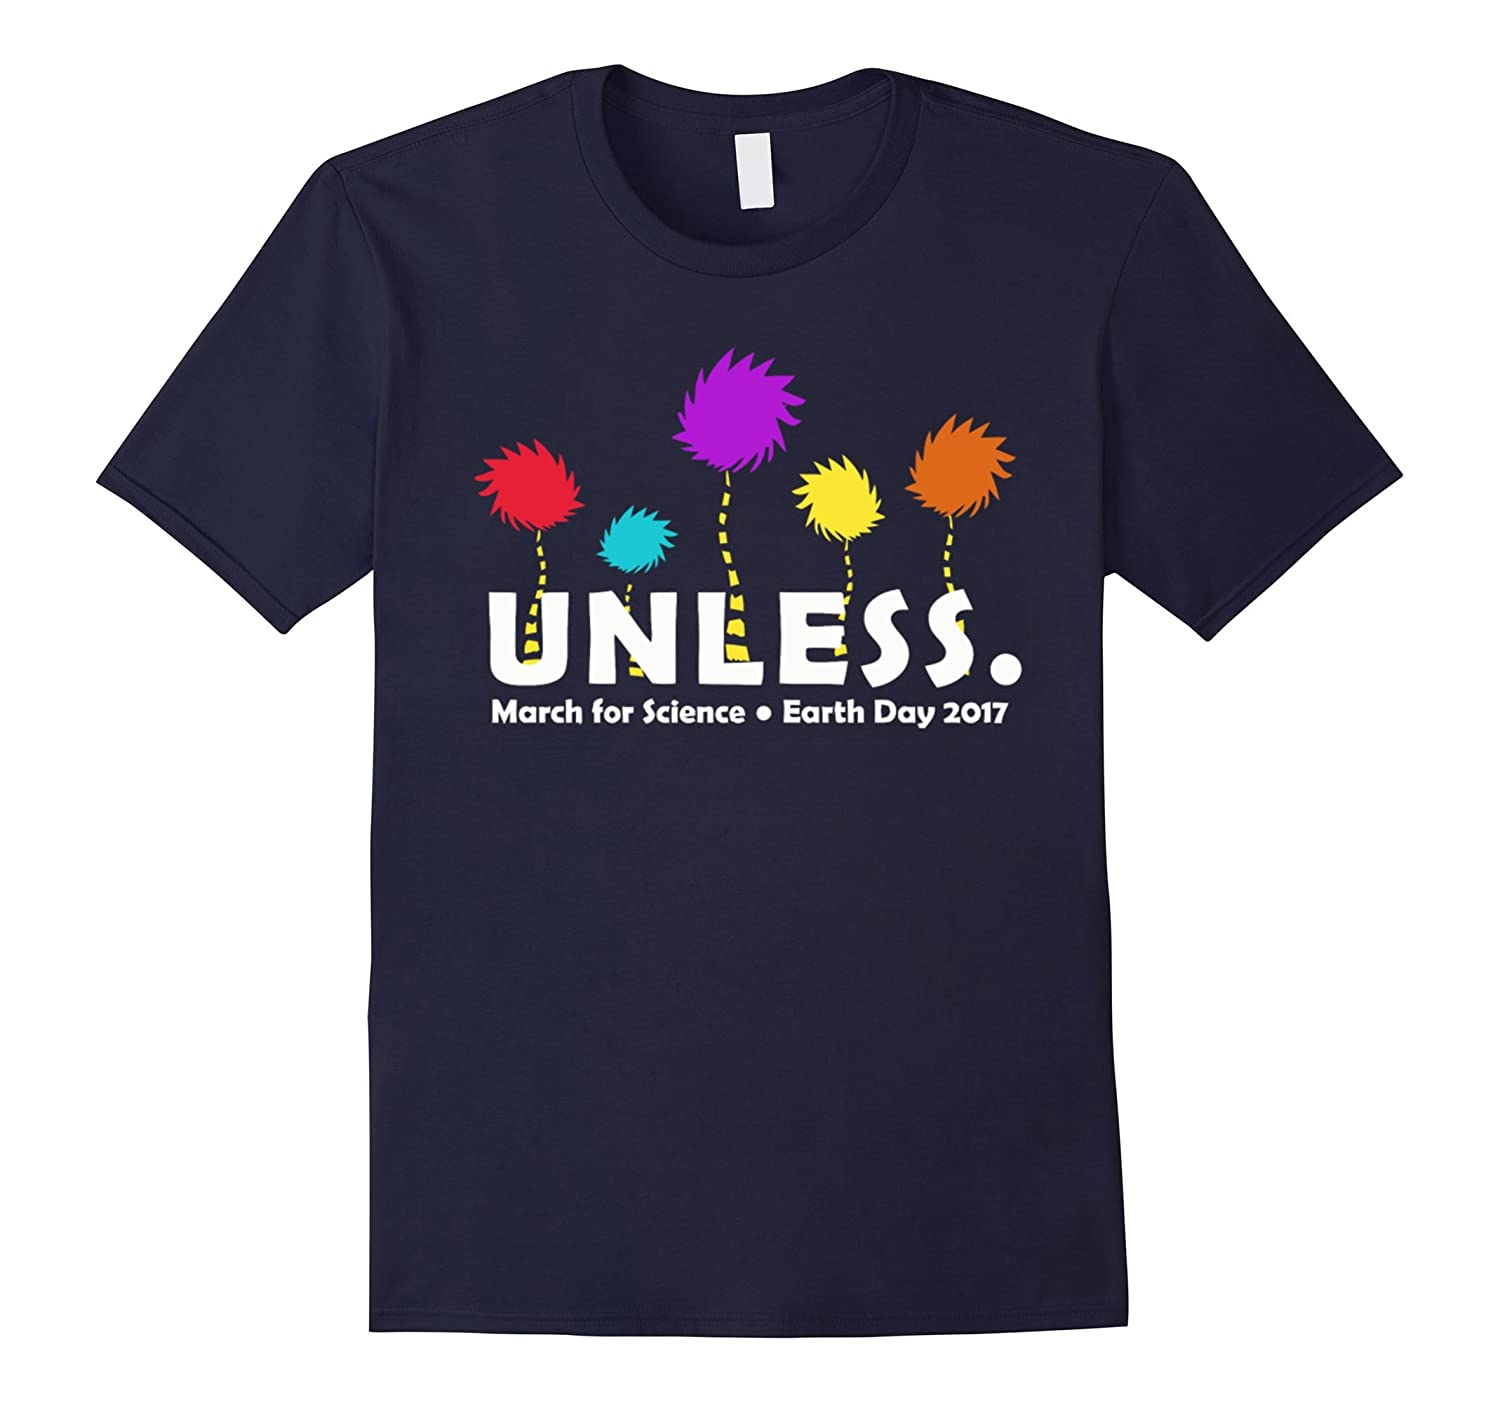 Unless Someone Like You Cares March for Science T-shirt-Vaci